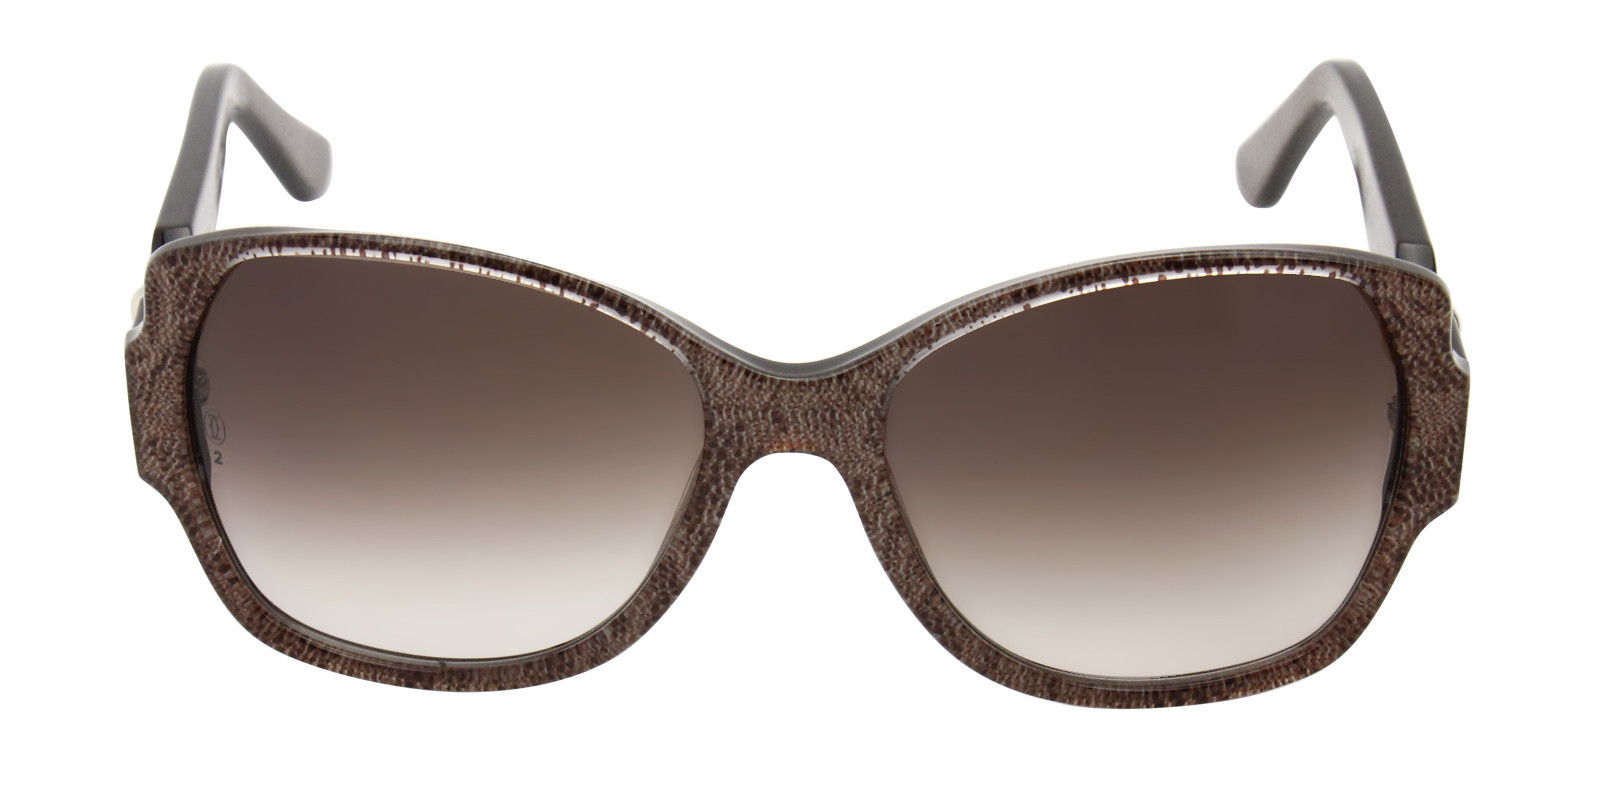 CARTIER WOMEN'S TRINITY T8200912 SUNGLASSES Brown (front)